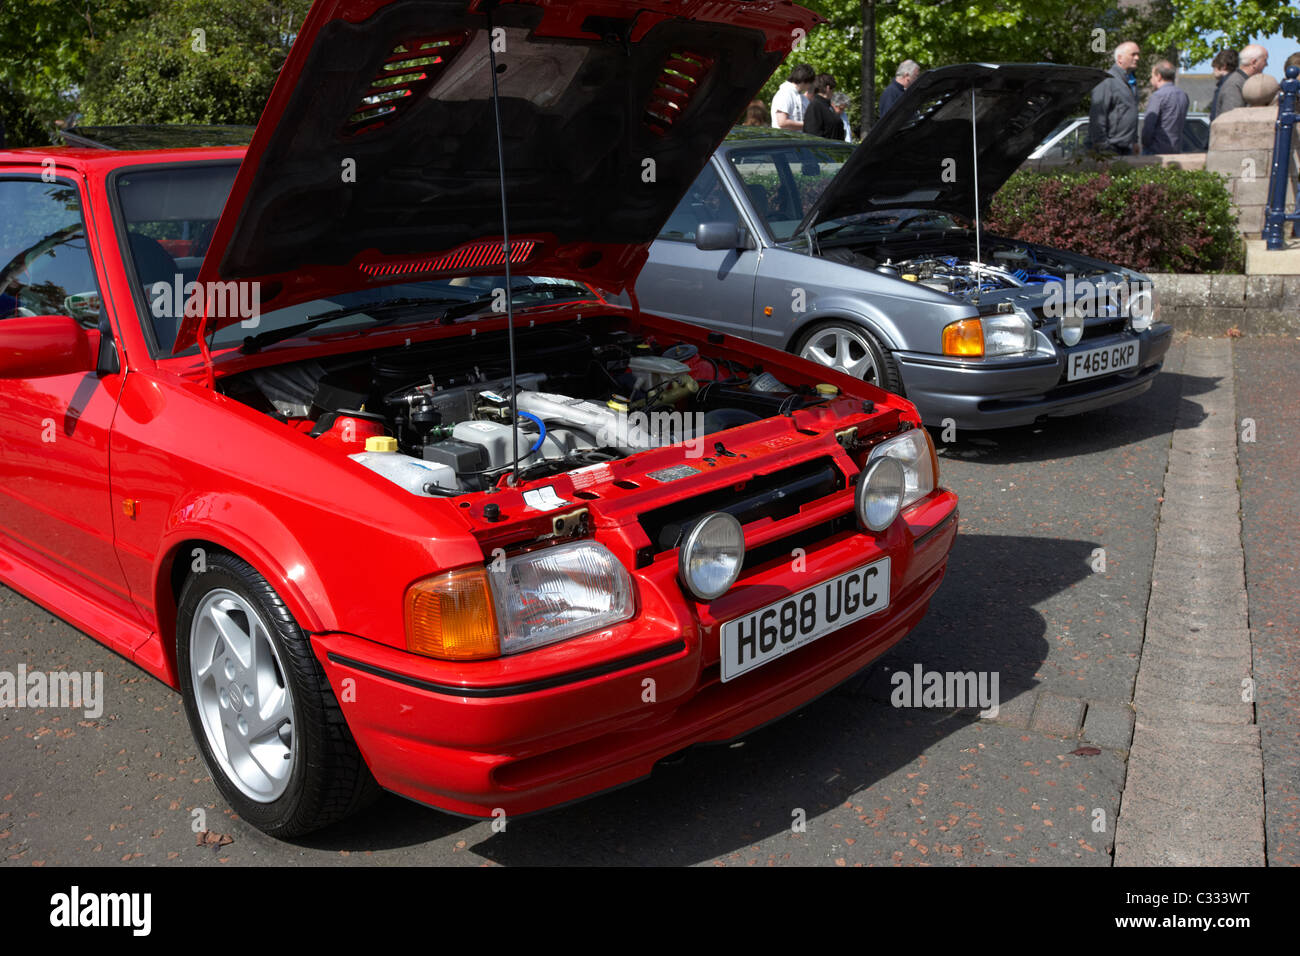 Two Spotless Clean Ford Escort Xr3i Show Cars At A Modified Car